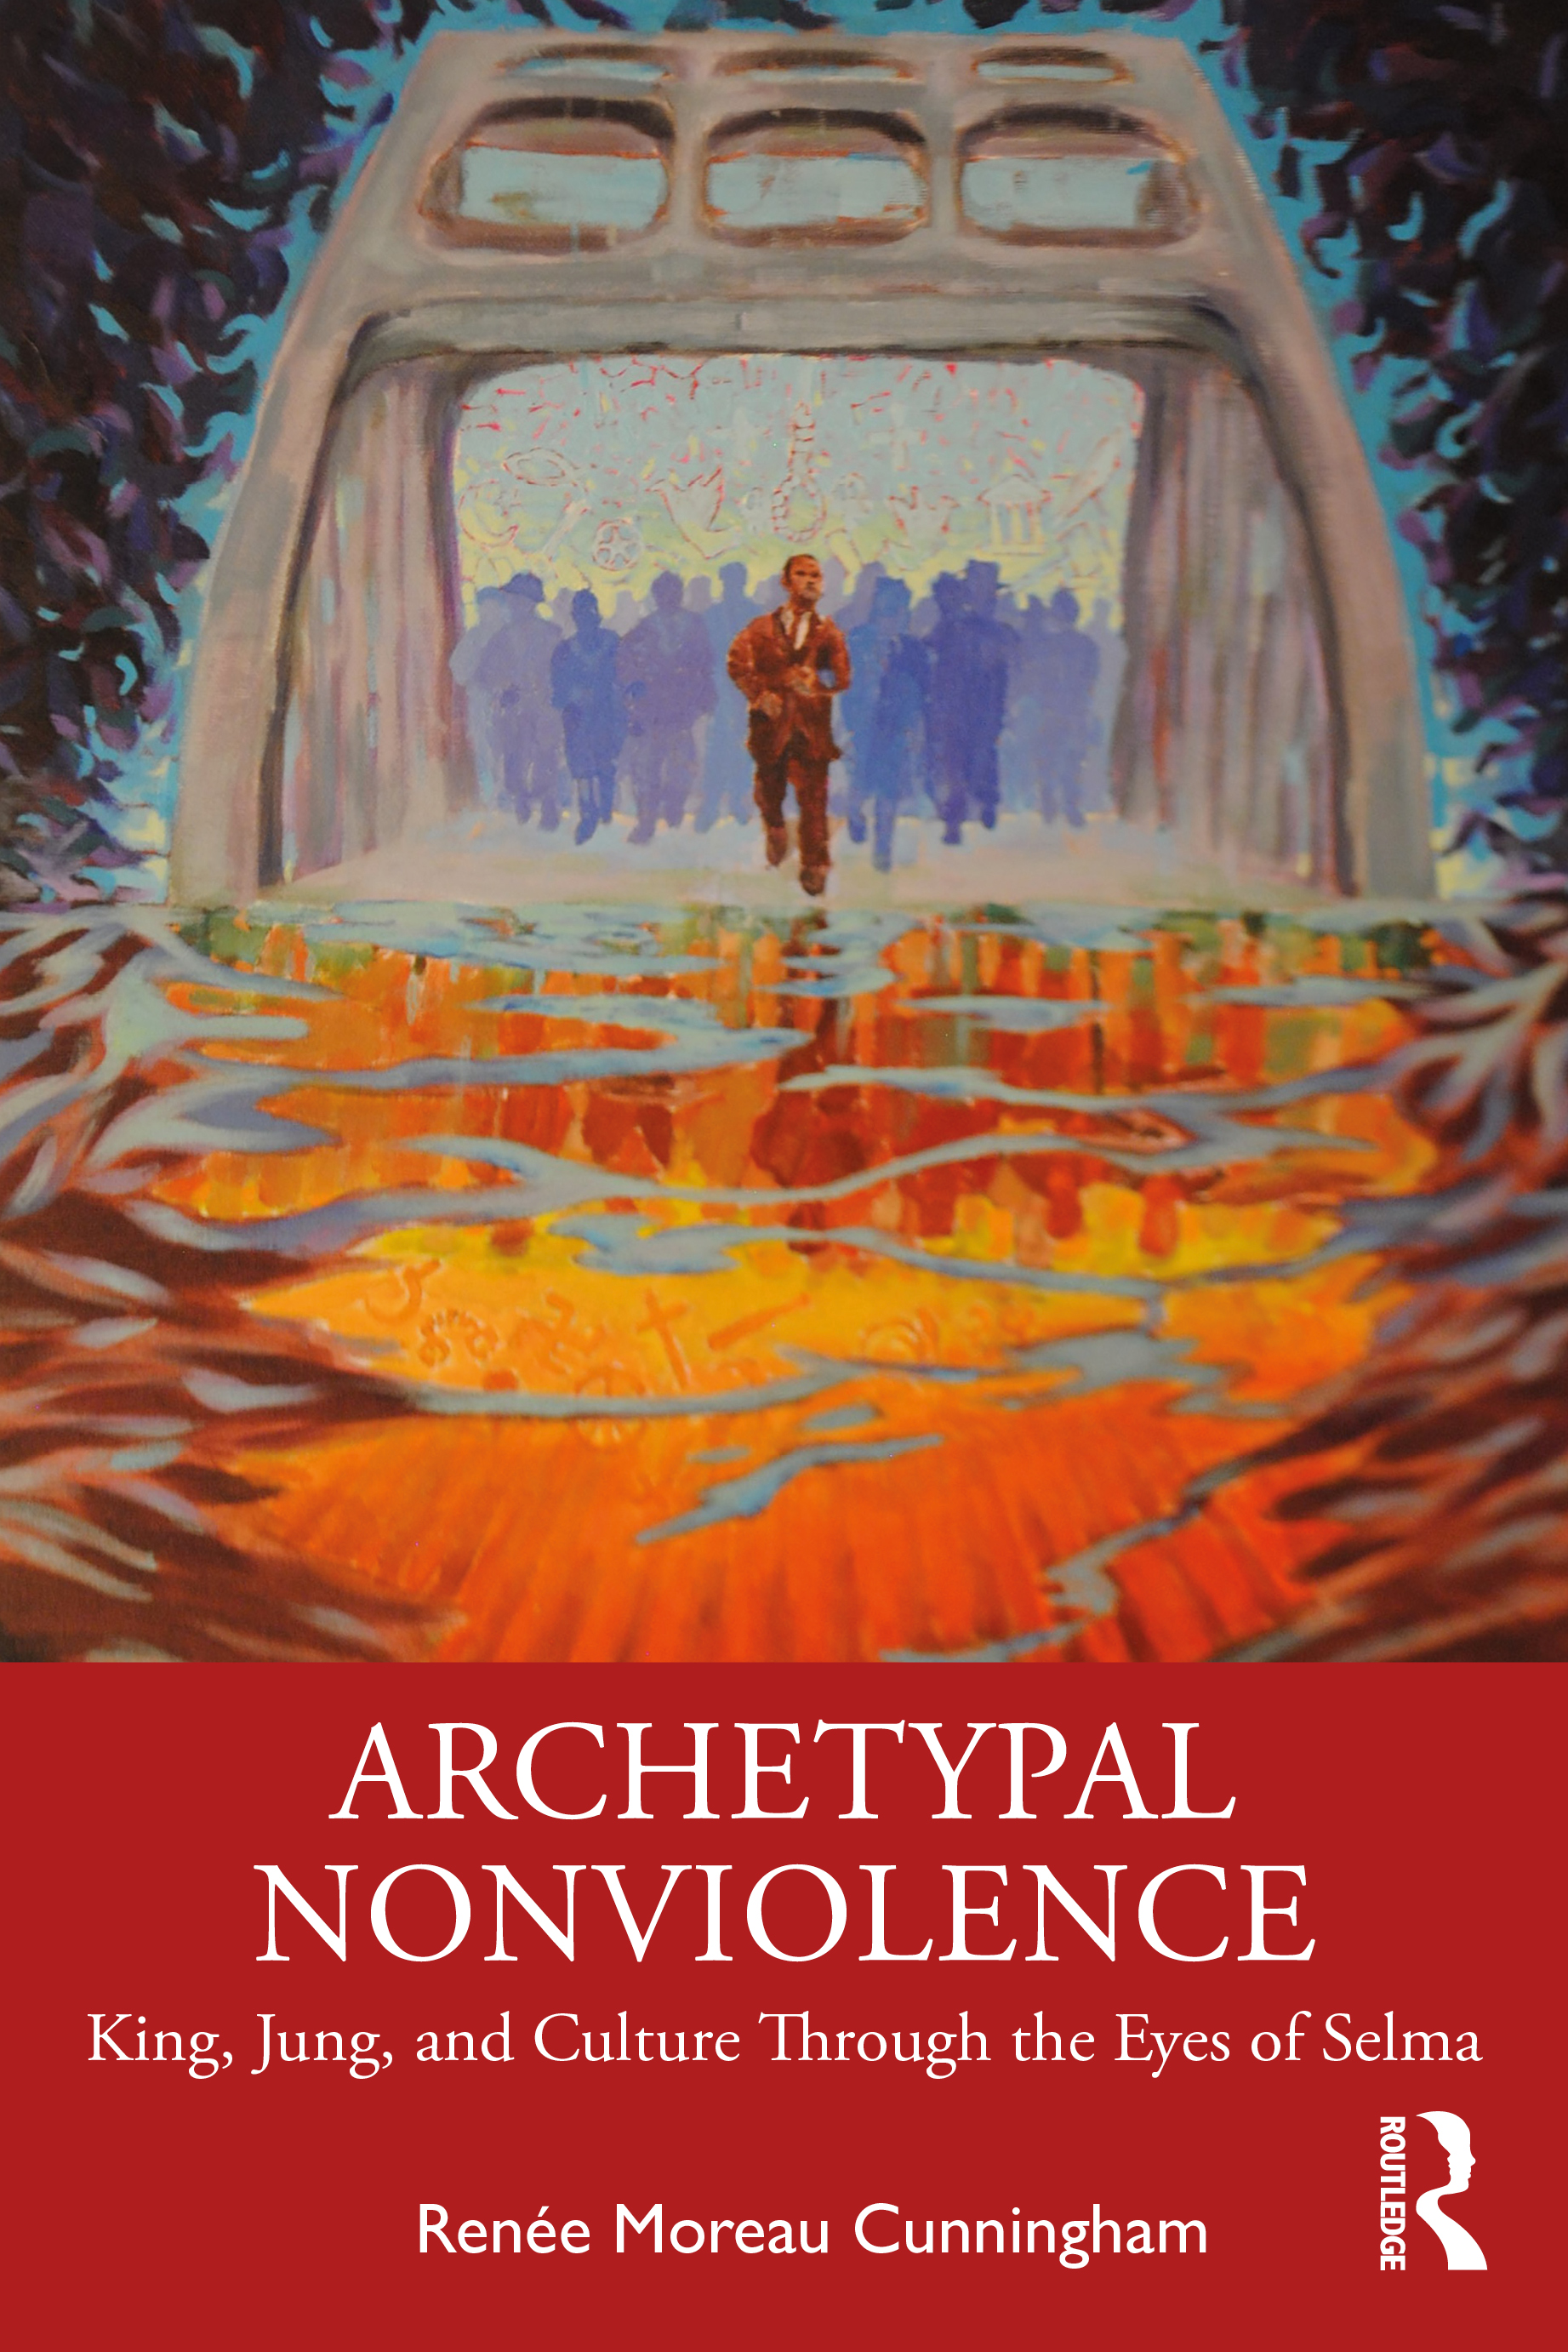 The analytic stance and the eightfold path of nonviolence